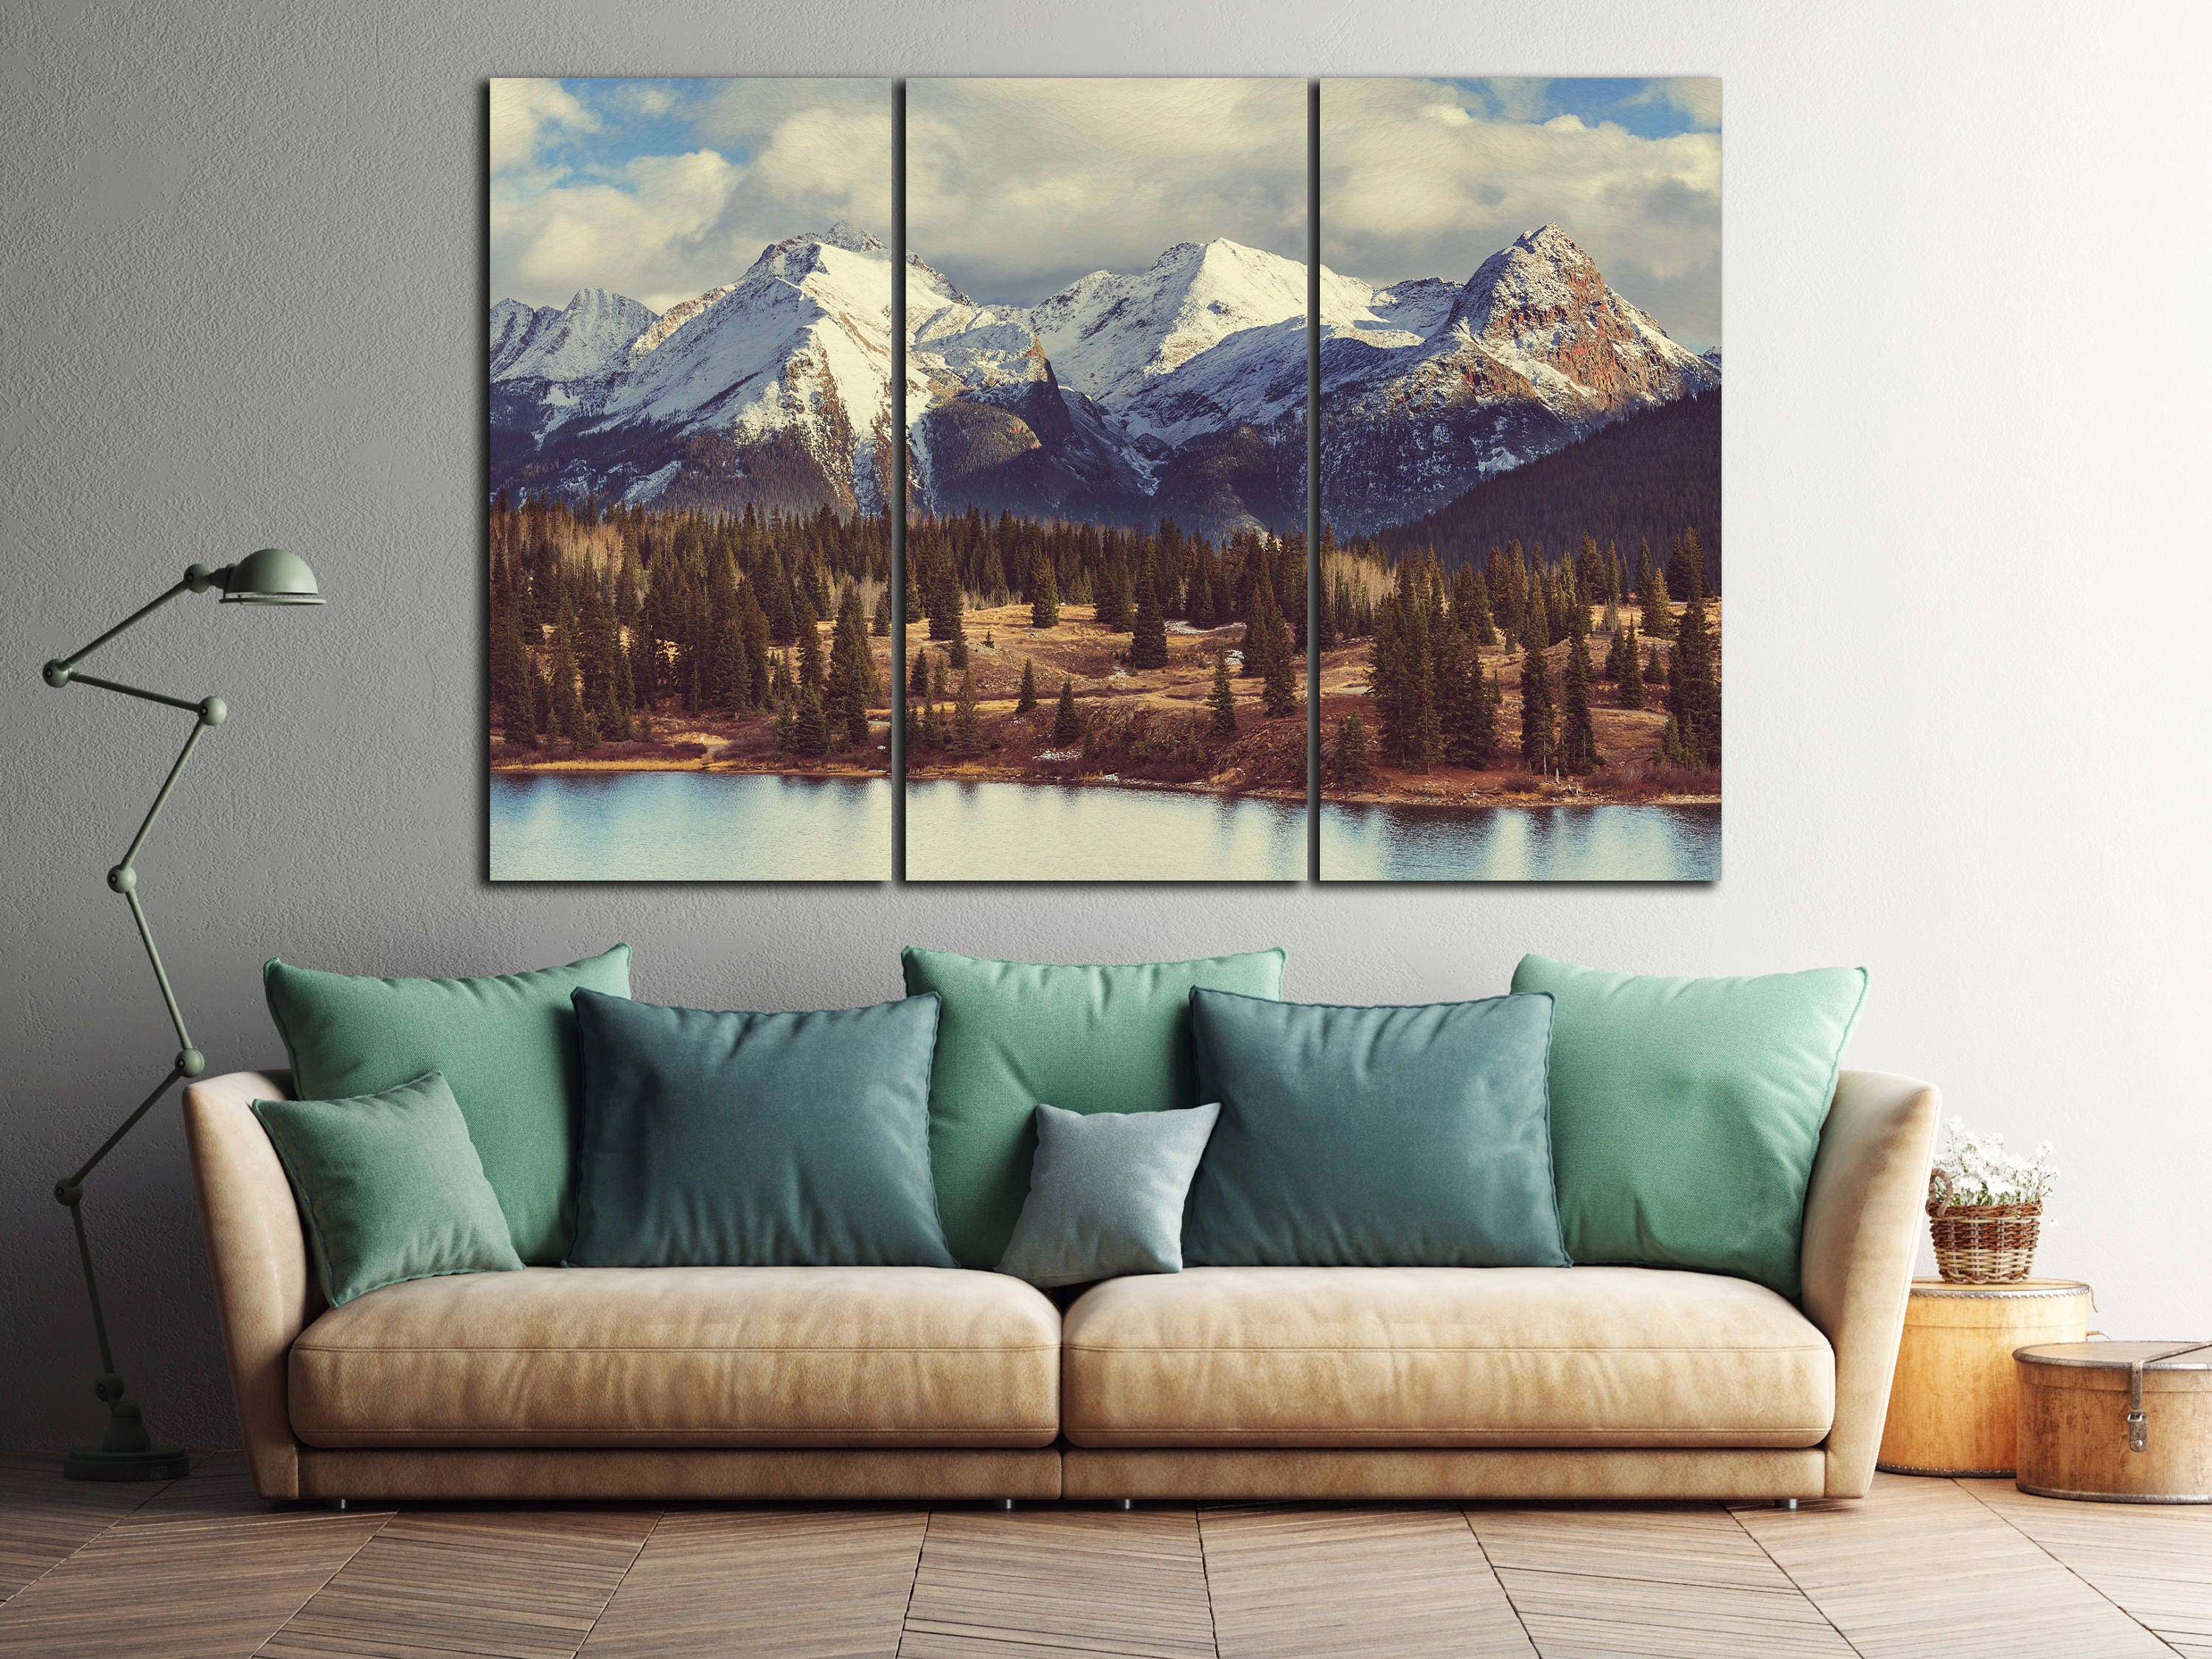 3 Panel Colorado Mountains Leather Print/Large Wall Art/Large Wall Decor/Nature Print/3 Pieces Wall Art/Made in Italy/Better than Canvas! & 3 Panel Colorado Mountains Leather Print/Large Wall Art/Large Wall ...